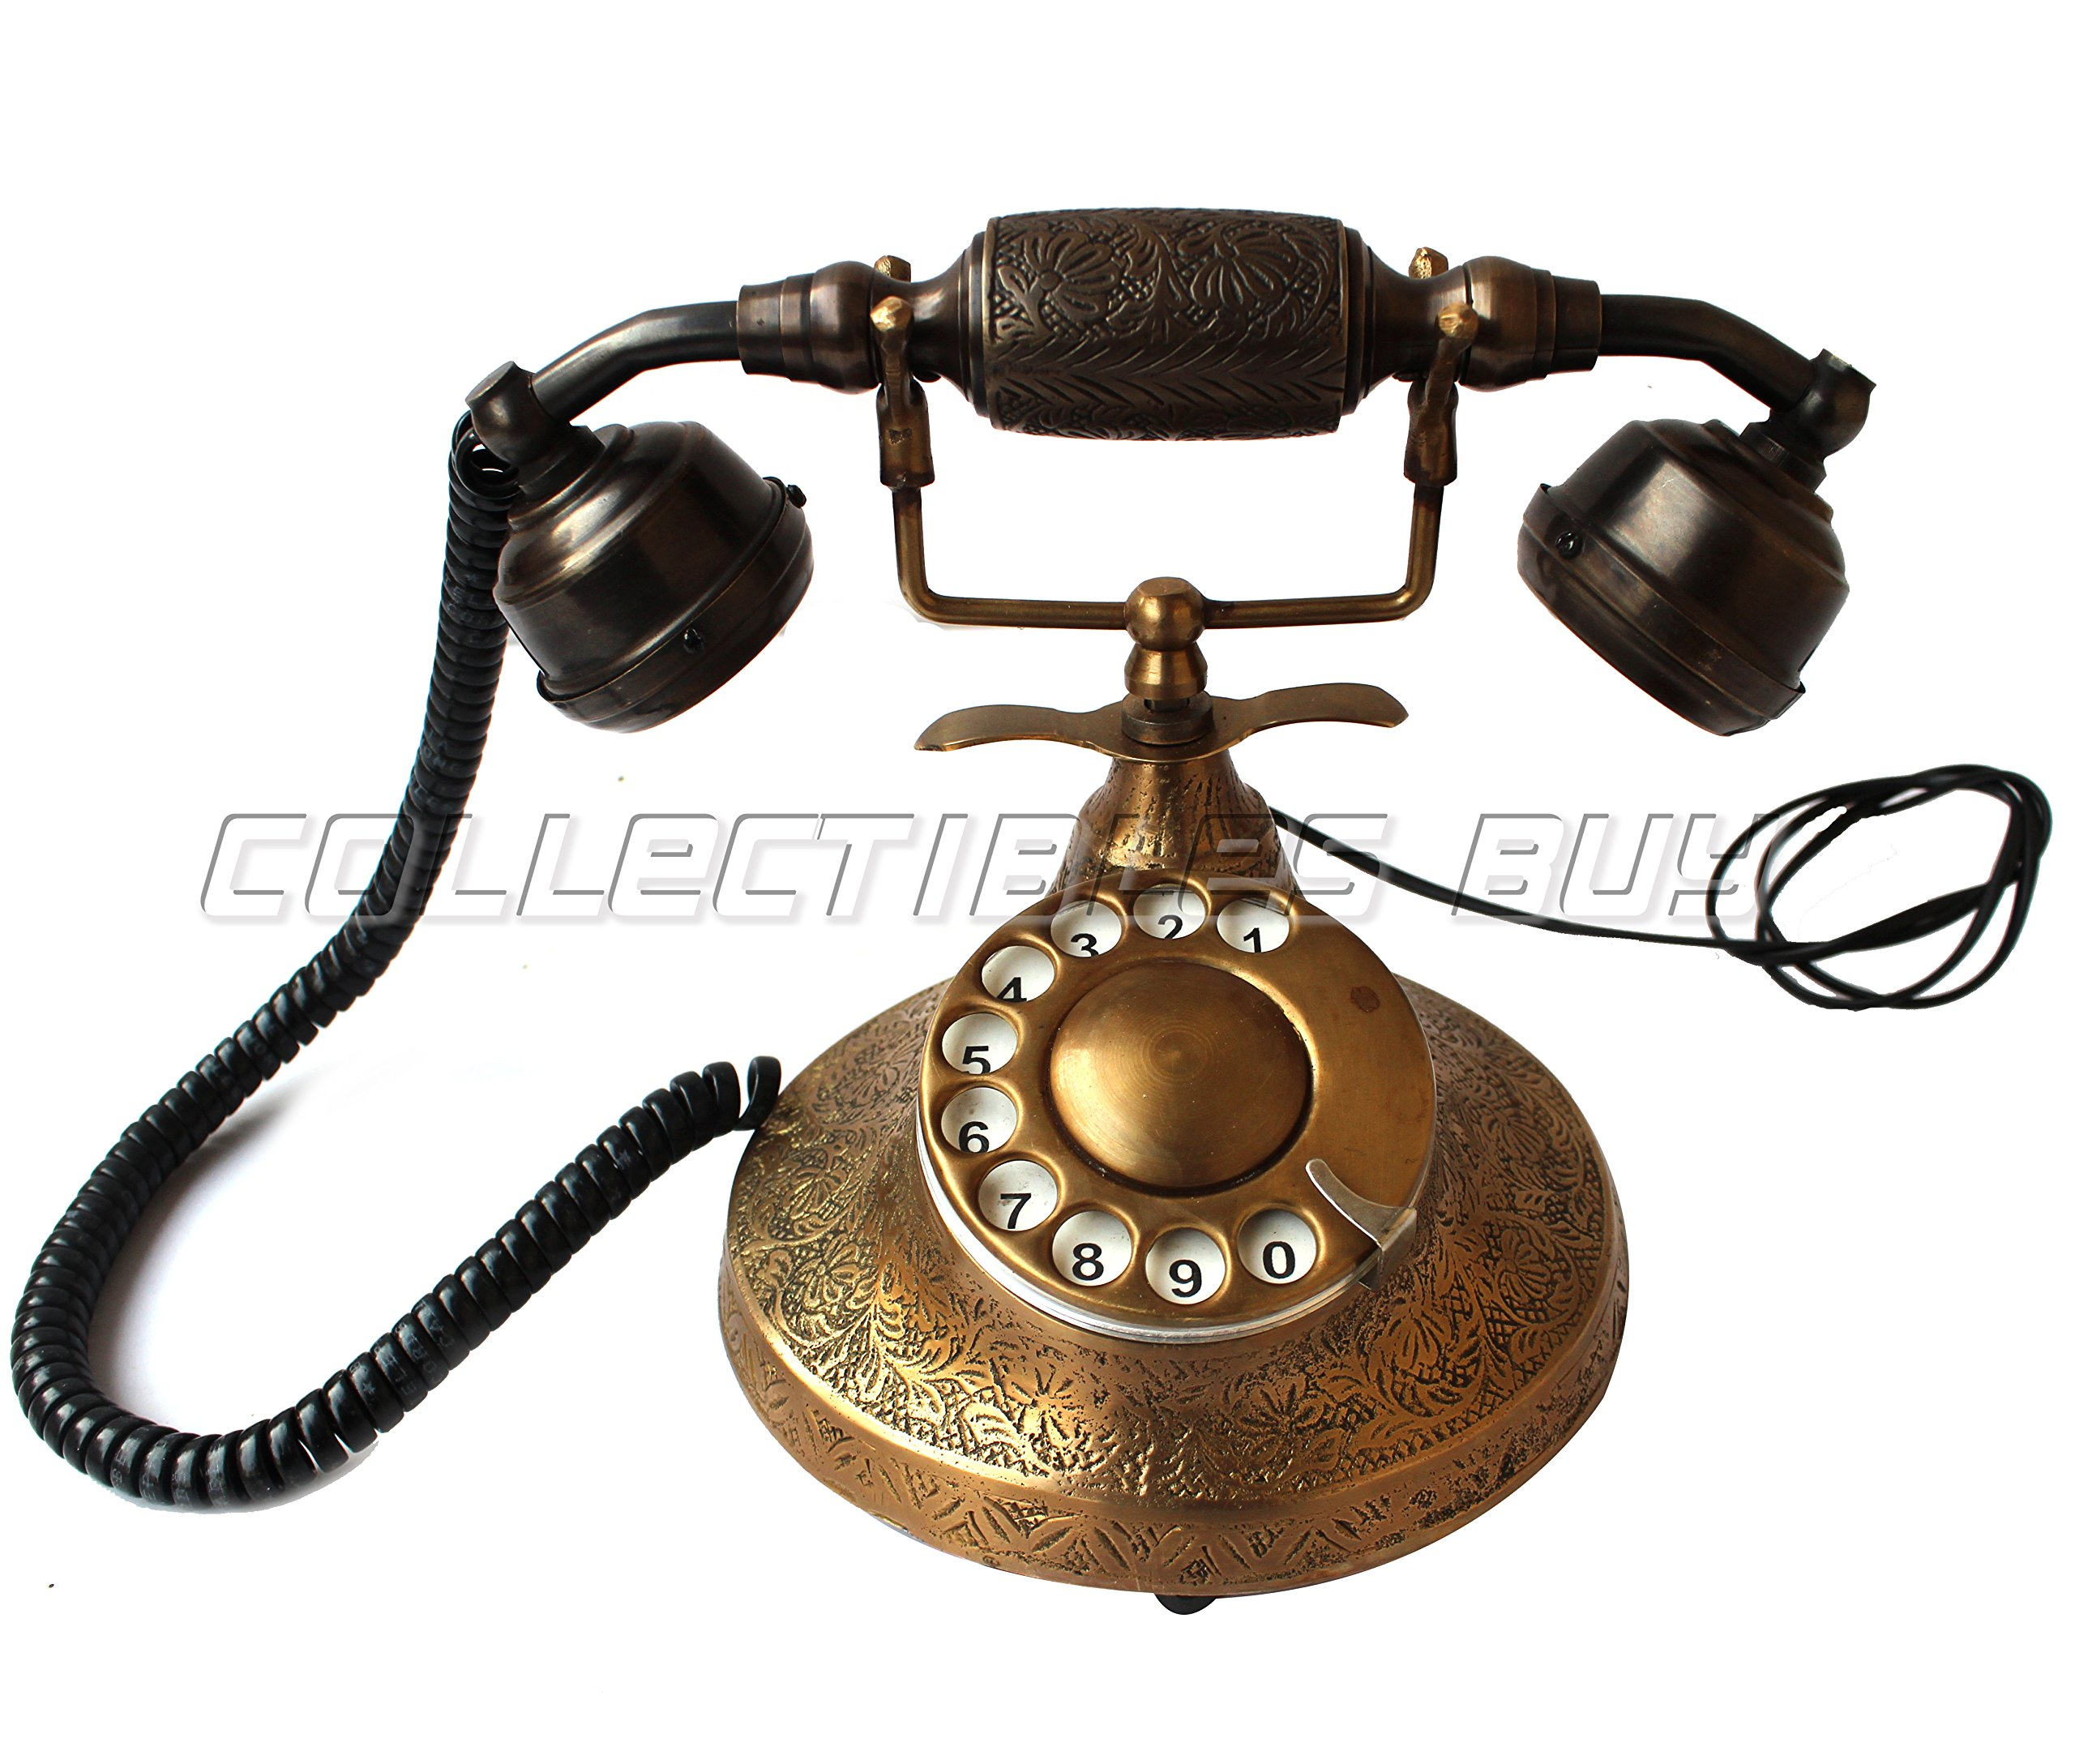 Vintage Table Decorative Telephone Copper Vintage Style Rotary Retro old fashioned Rotary Dial Home and office Telephone